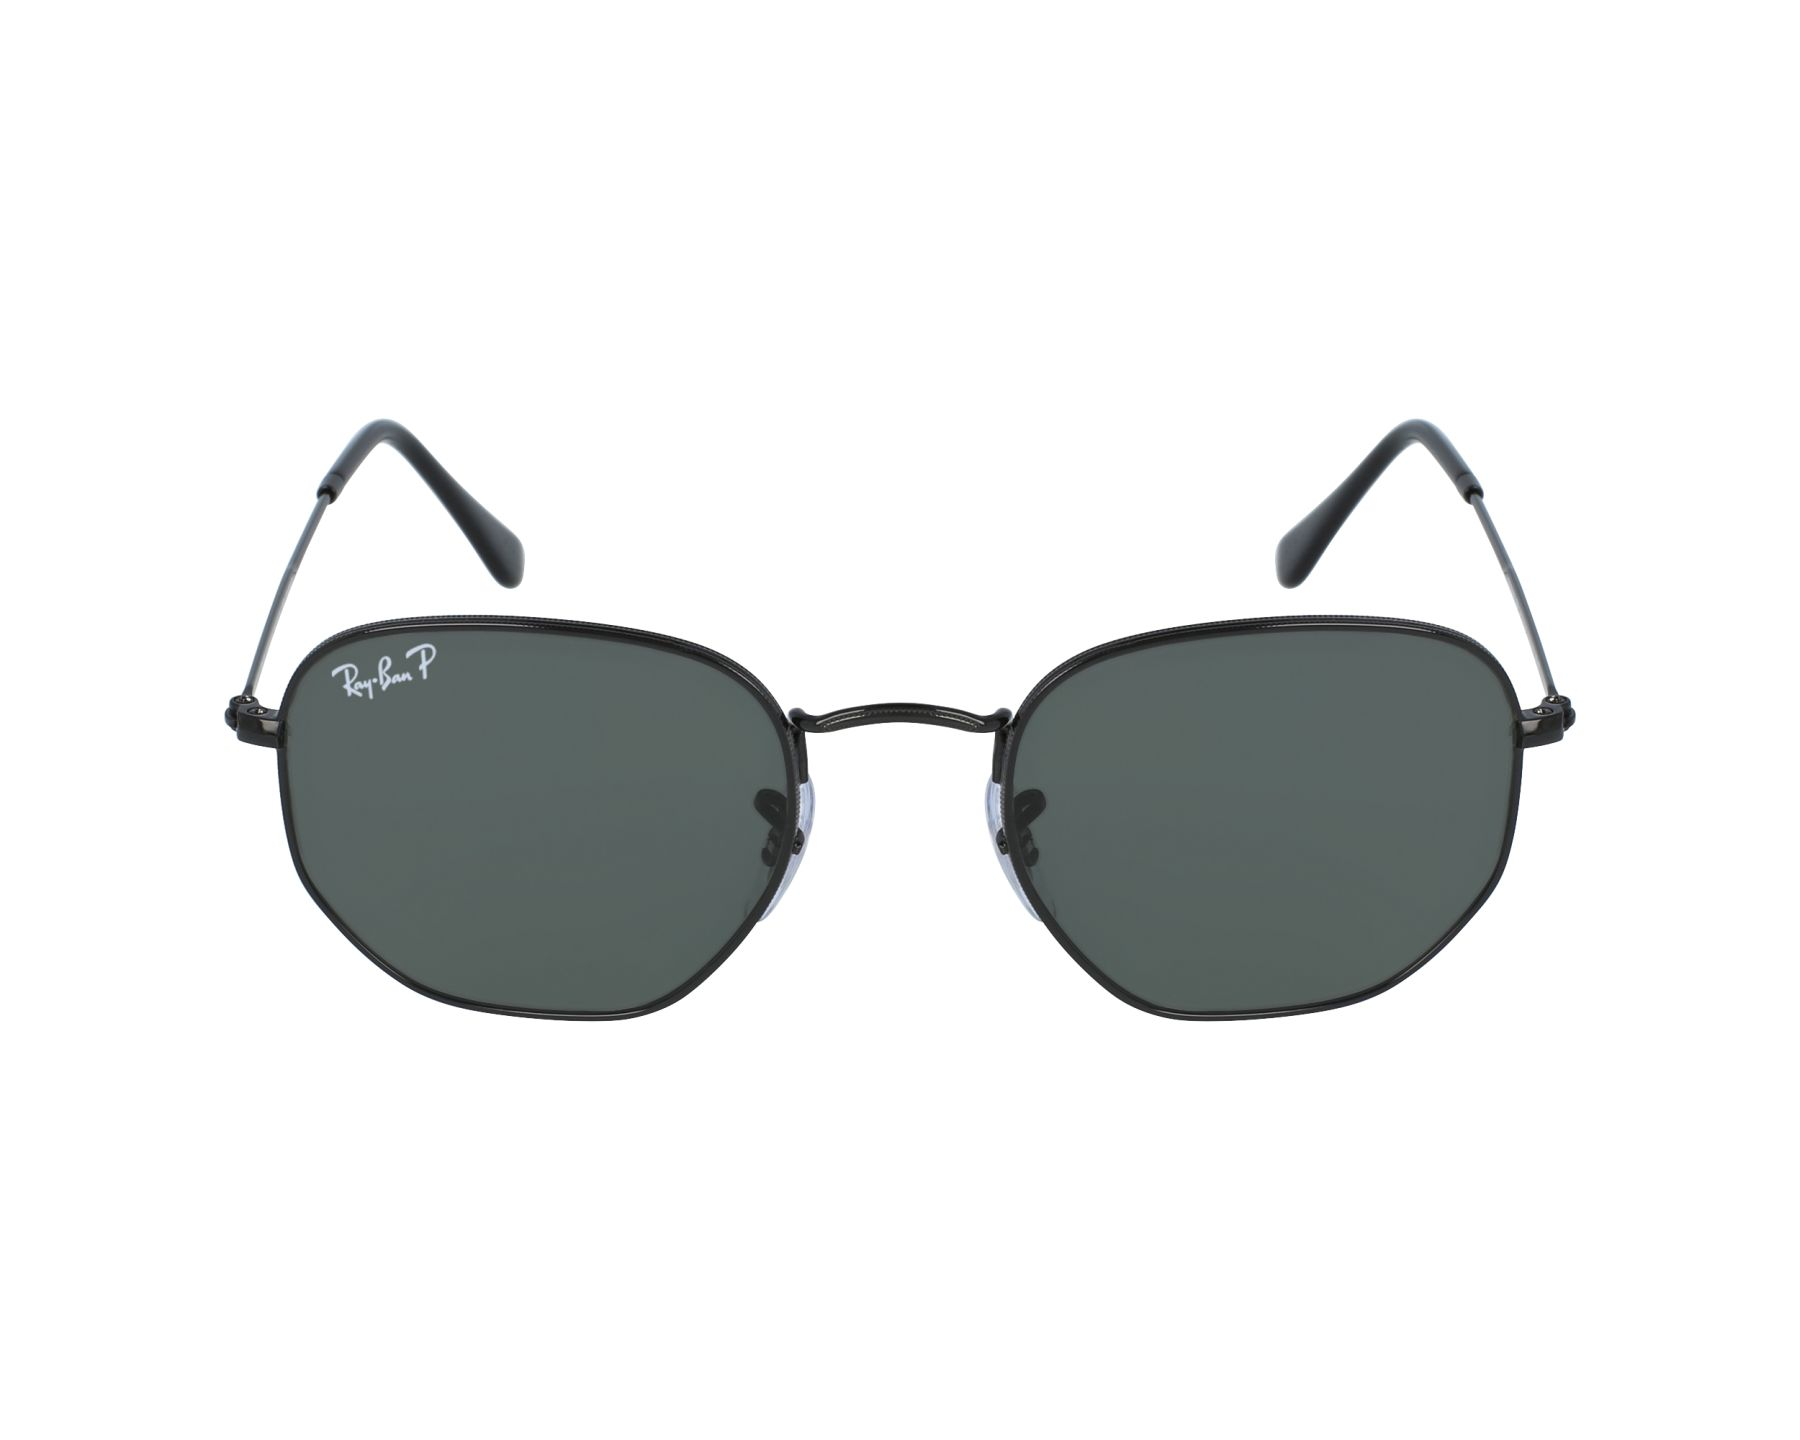 fa063547421fe Sunglasses Ray-Ban RB-3548-N 002 58 51-21 Black